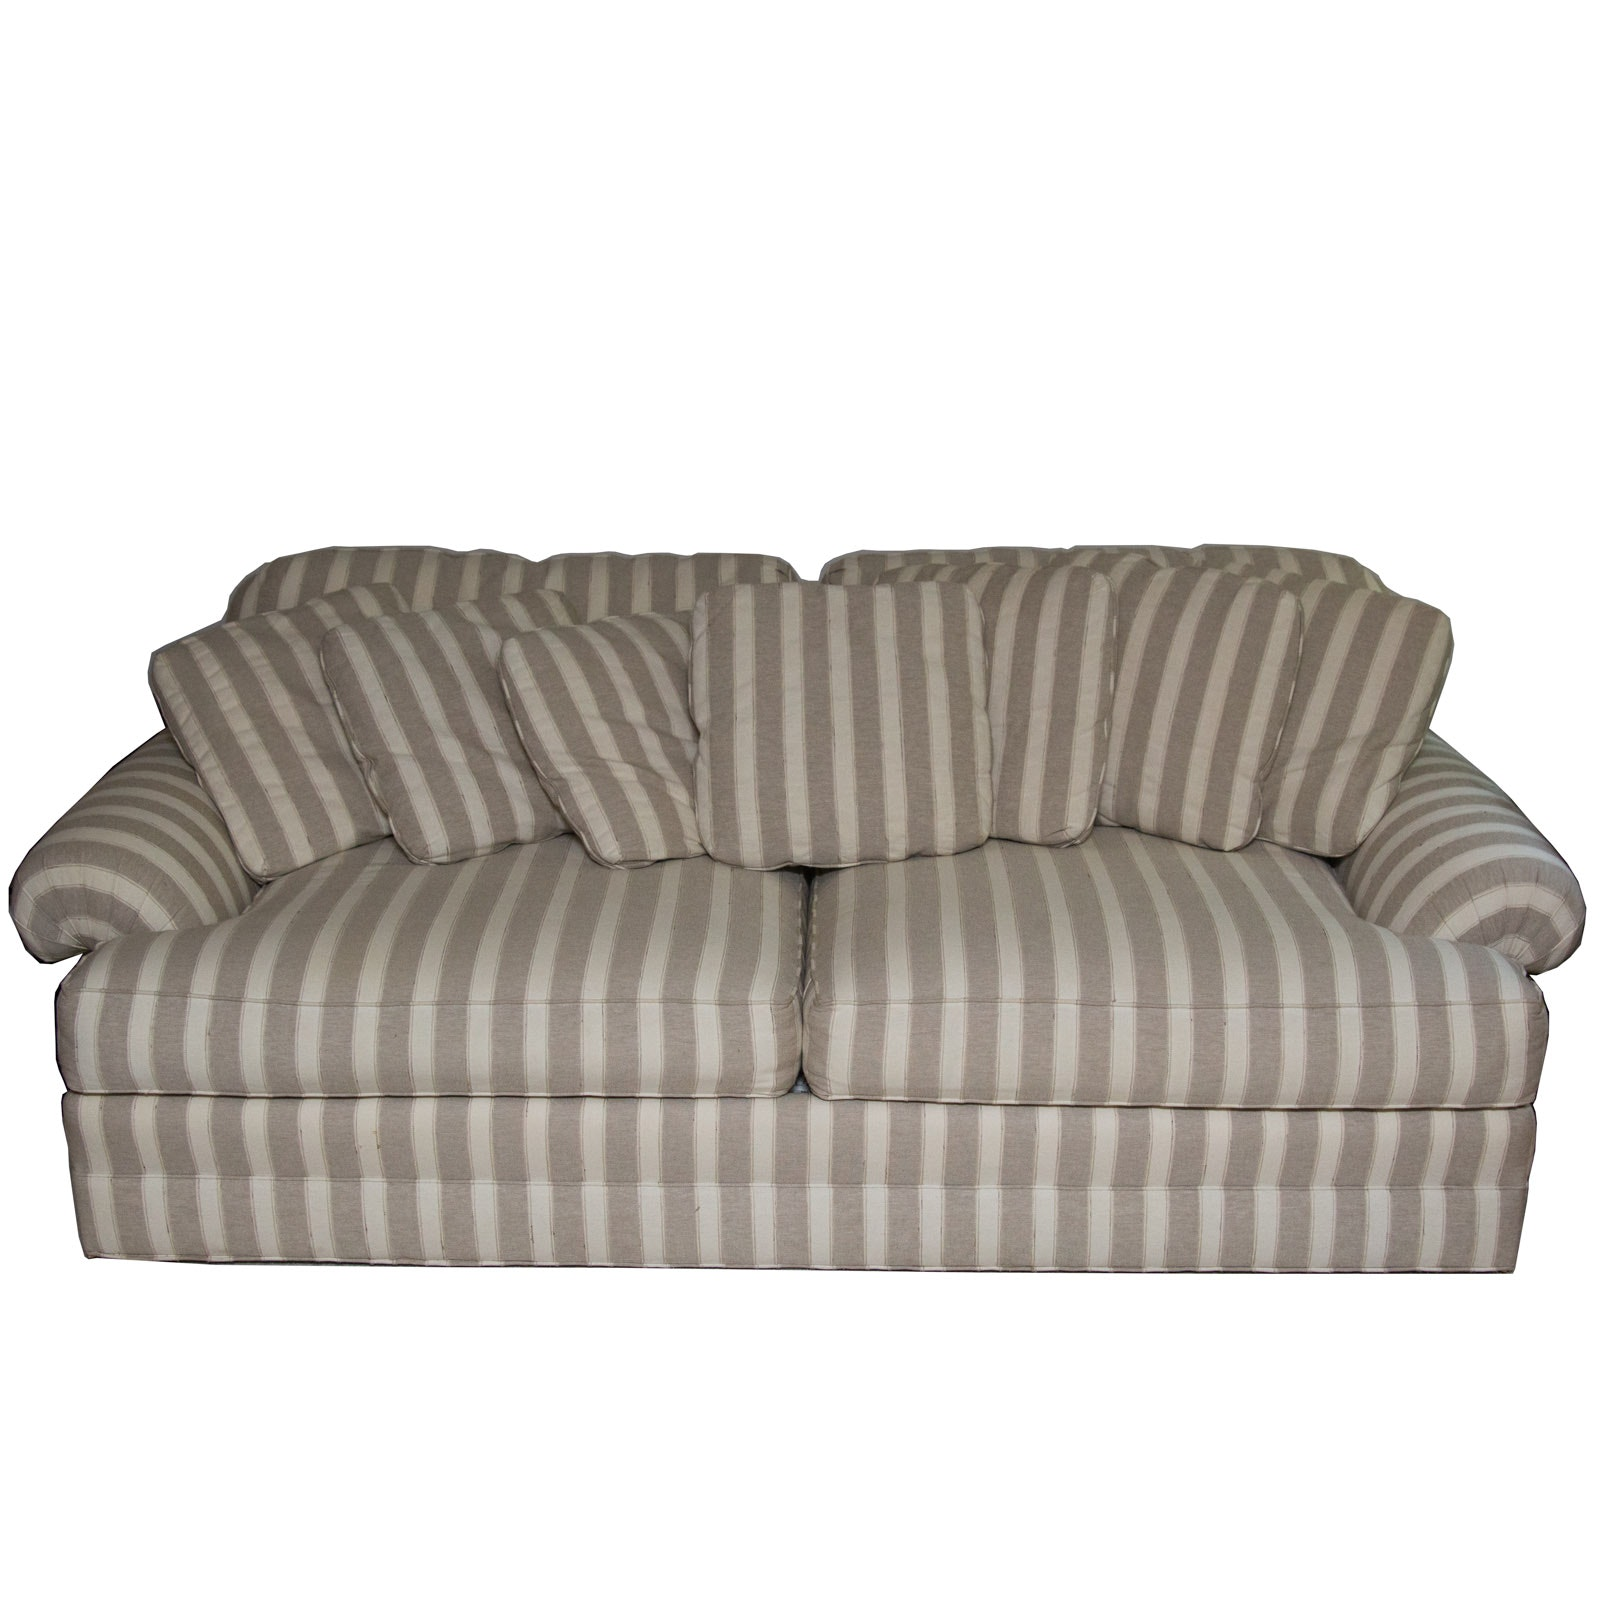 Sherrill Oversized Striped Loveseat